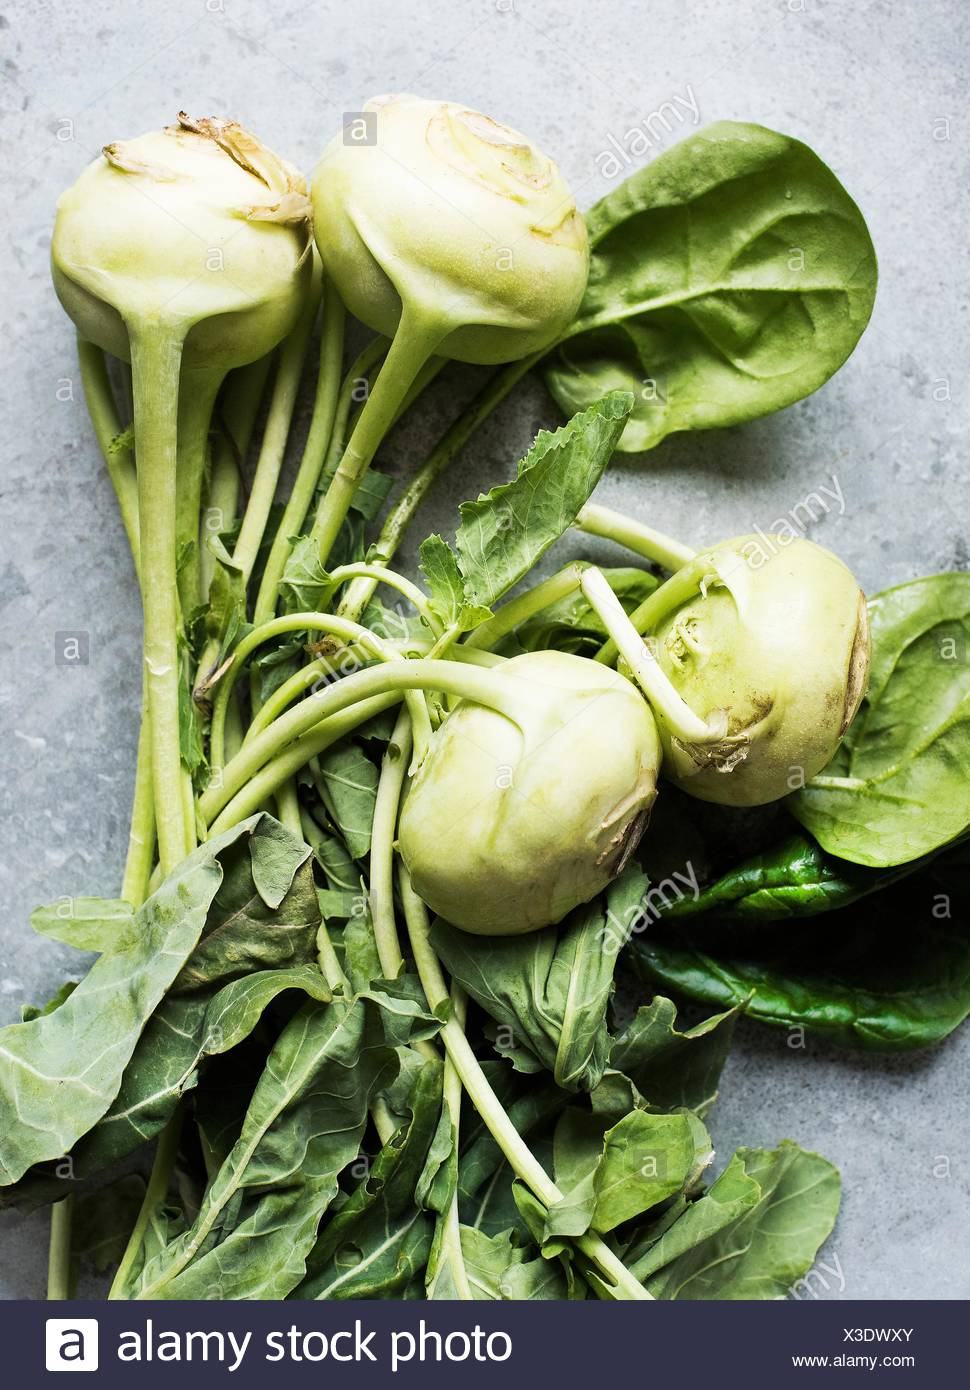 Overhead view of kohlrabi with leaves - Stock Image